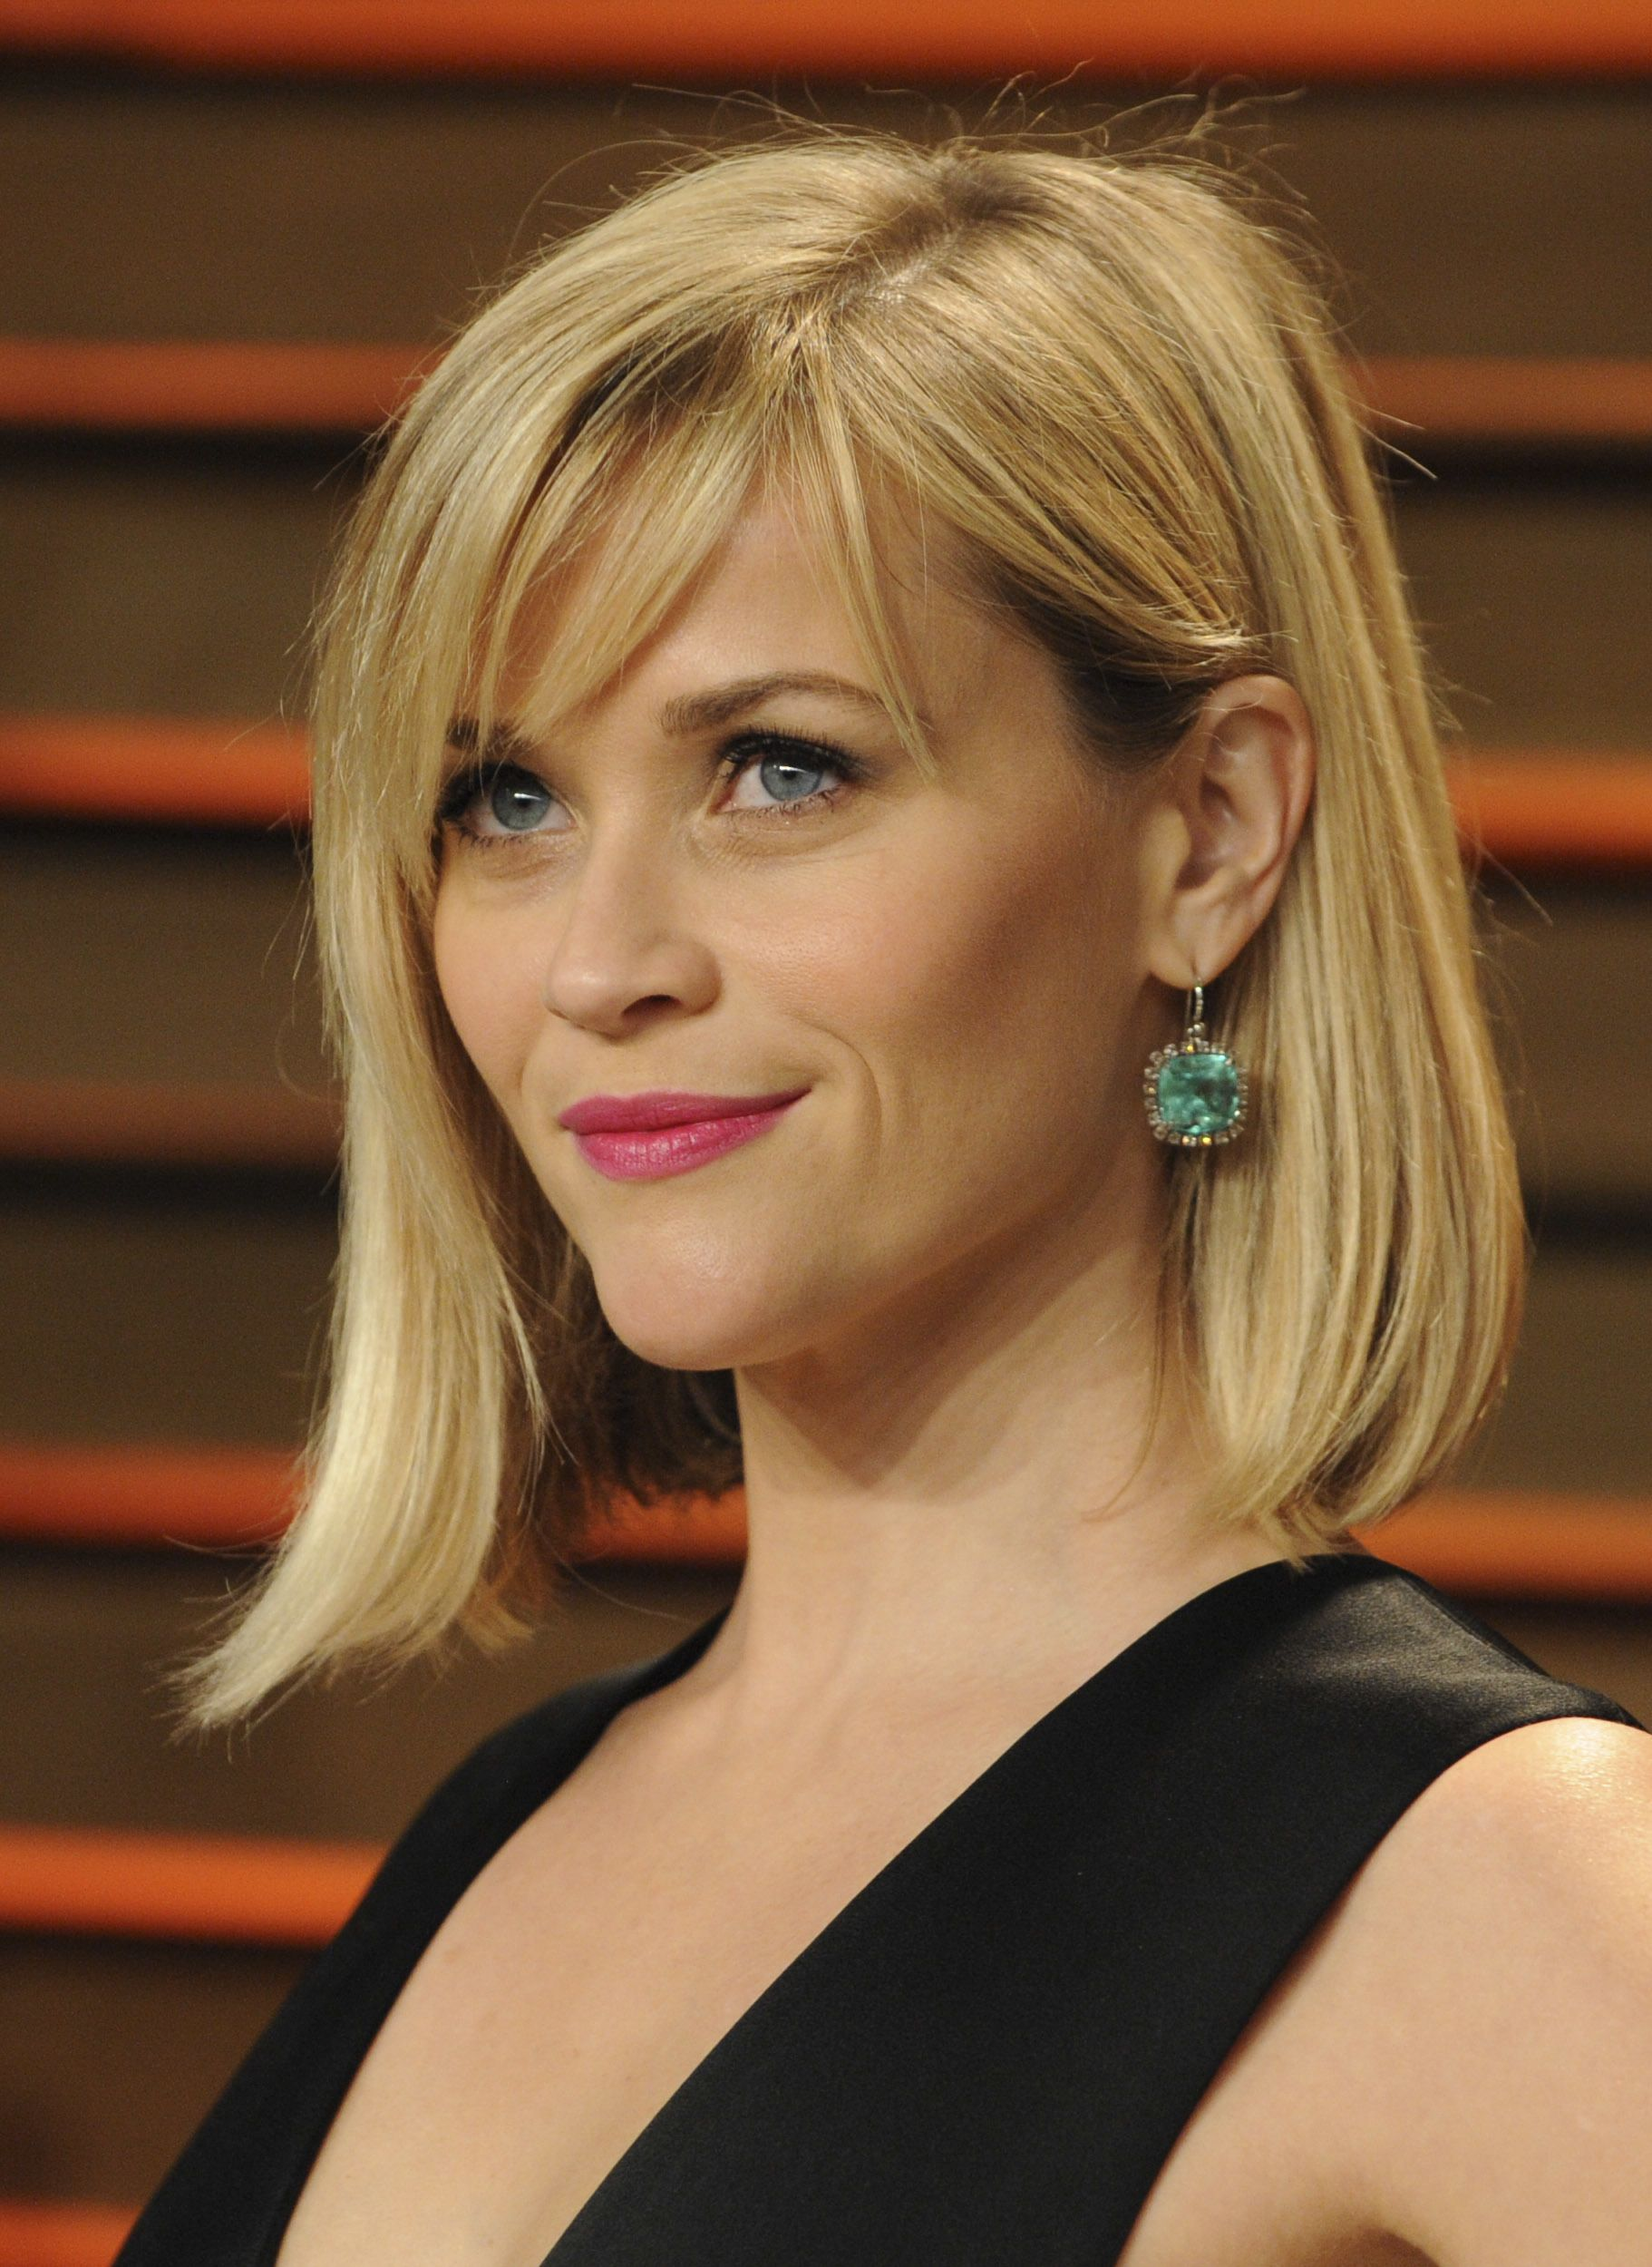 reese witherspoon recent haircut - Google Search | Hair & Beauty ...